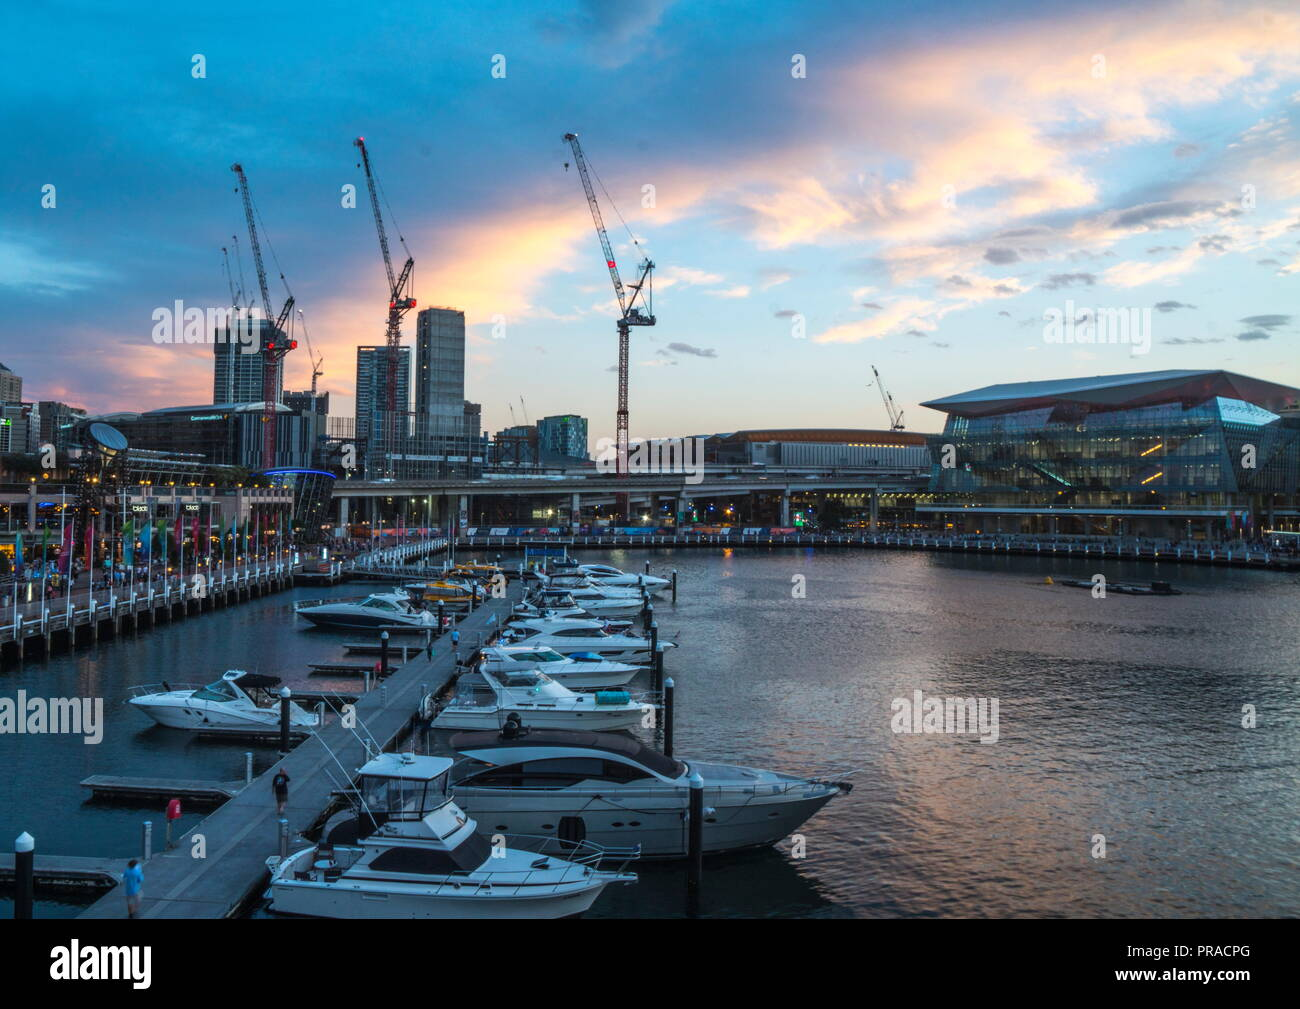 Darling Harbour in Sydney at sunset - Stock Image